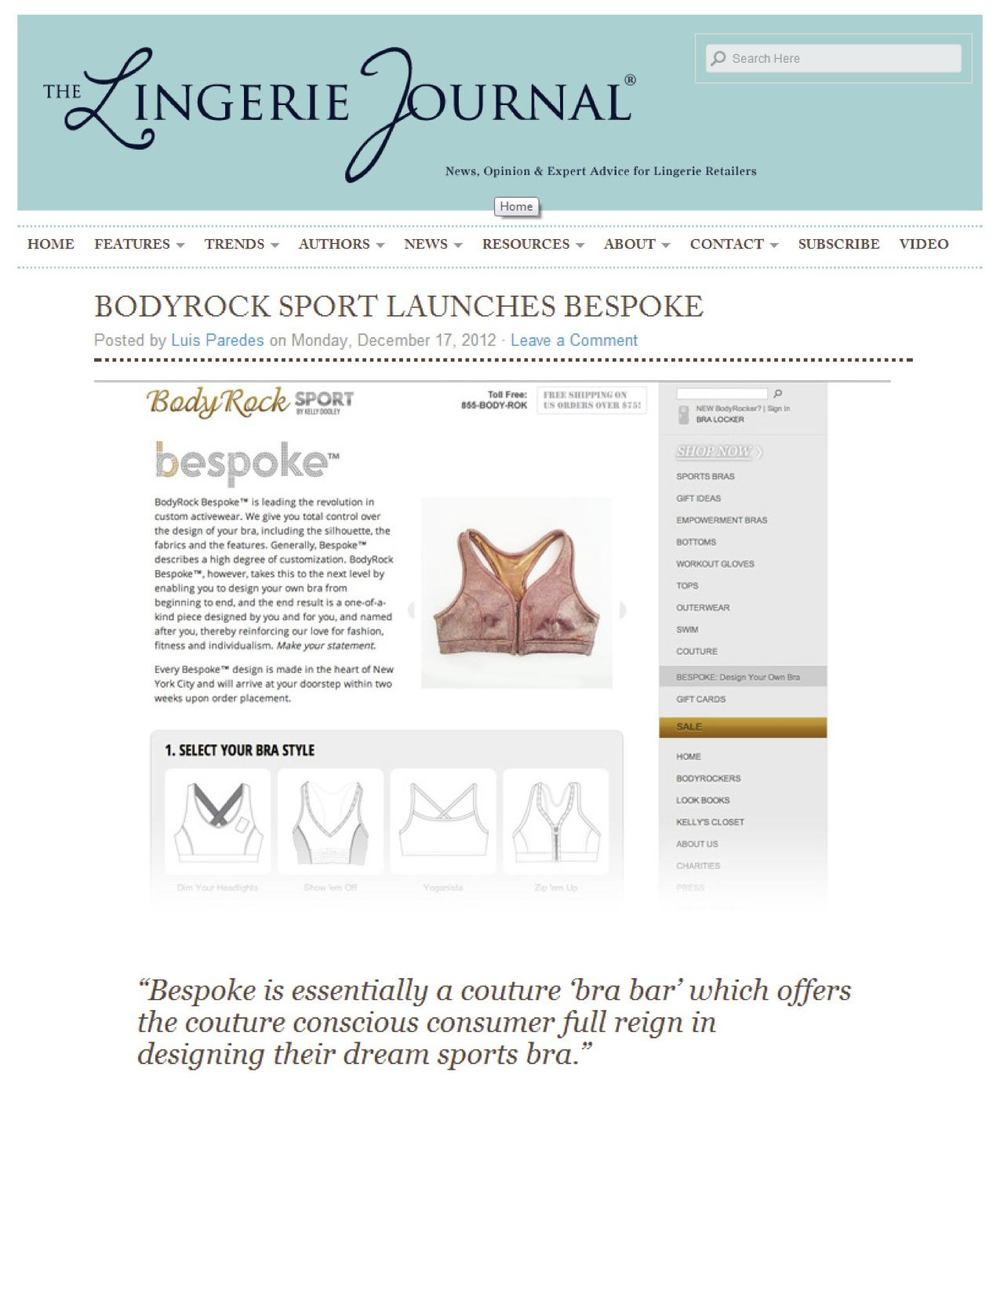 The Lingerie Journal-BodyRock Page 1.jpg